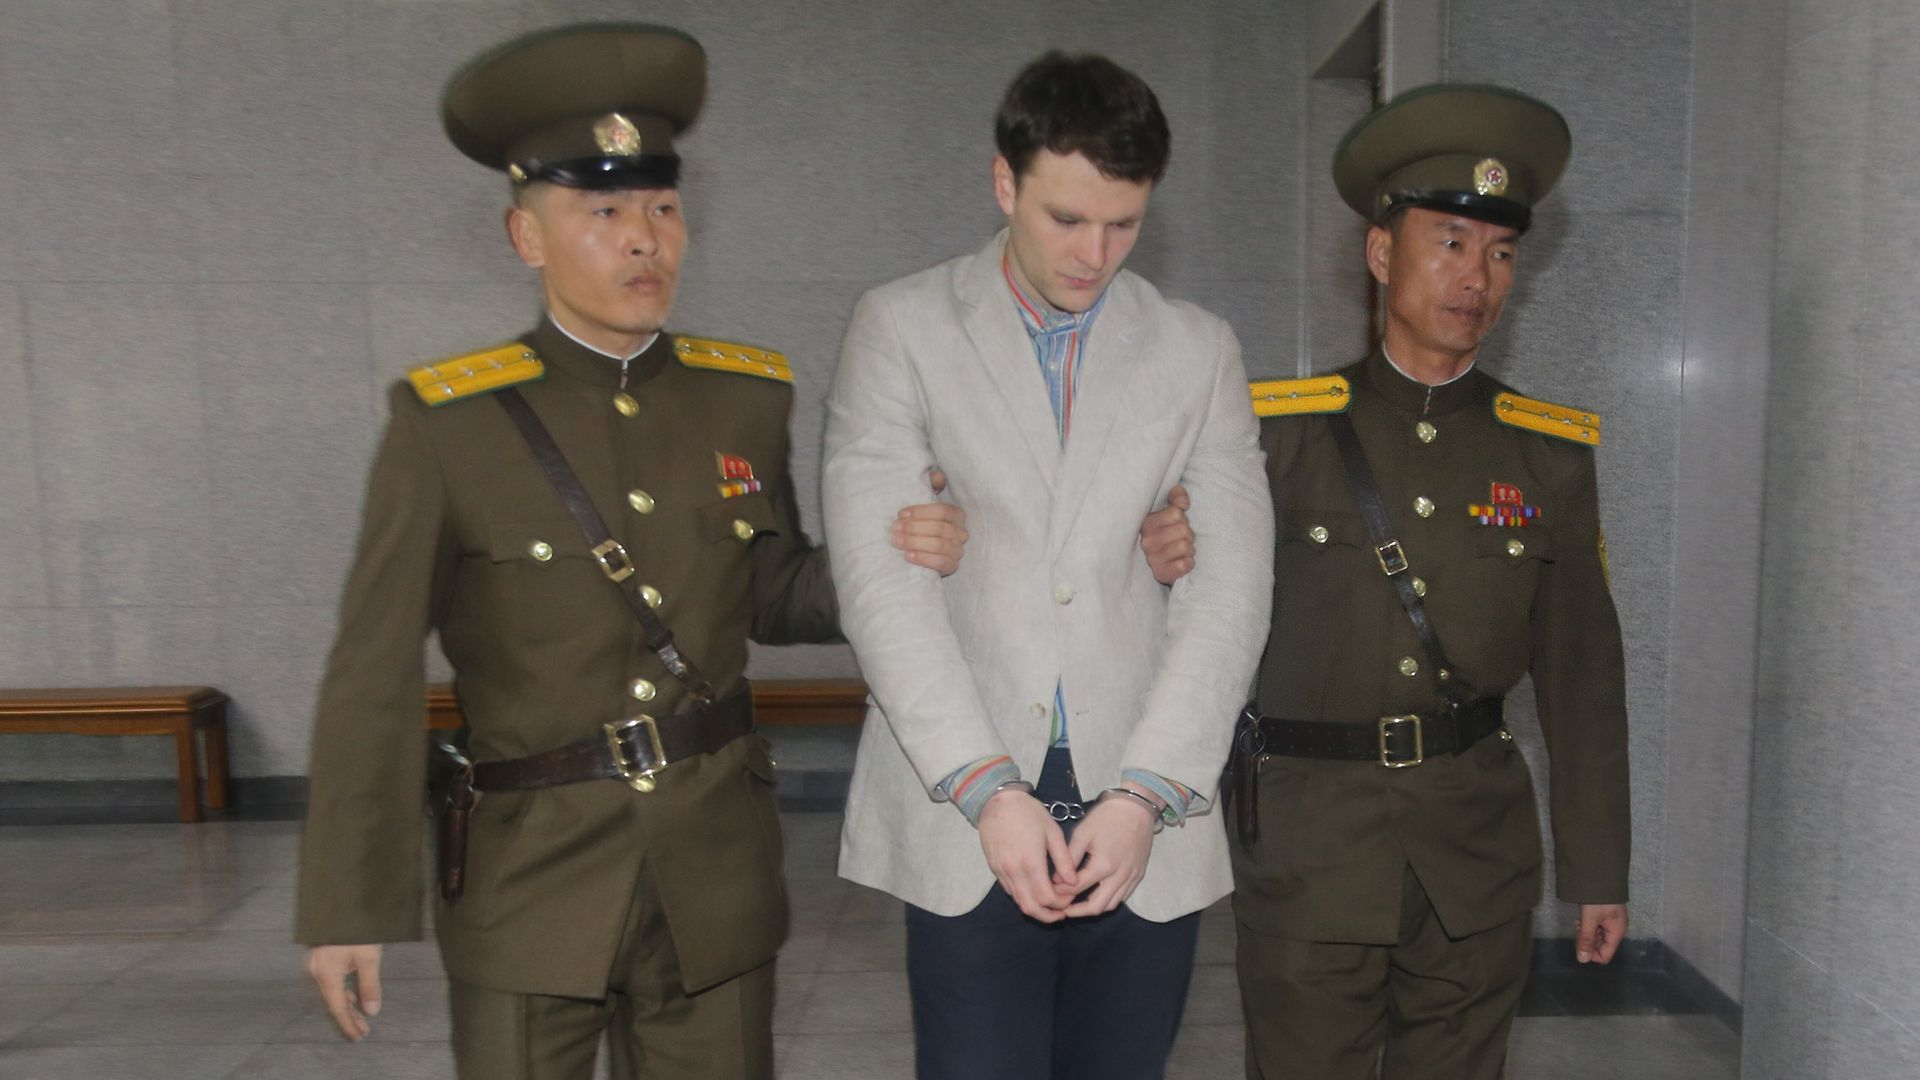 President Trump says North Korea's leader Kim Jong-un only learned about Otto Warmbier's death after the event.